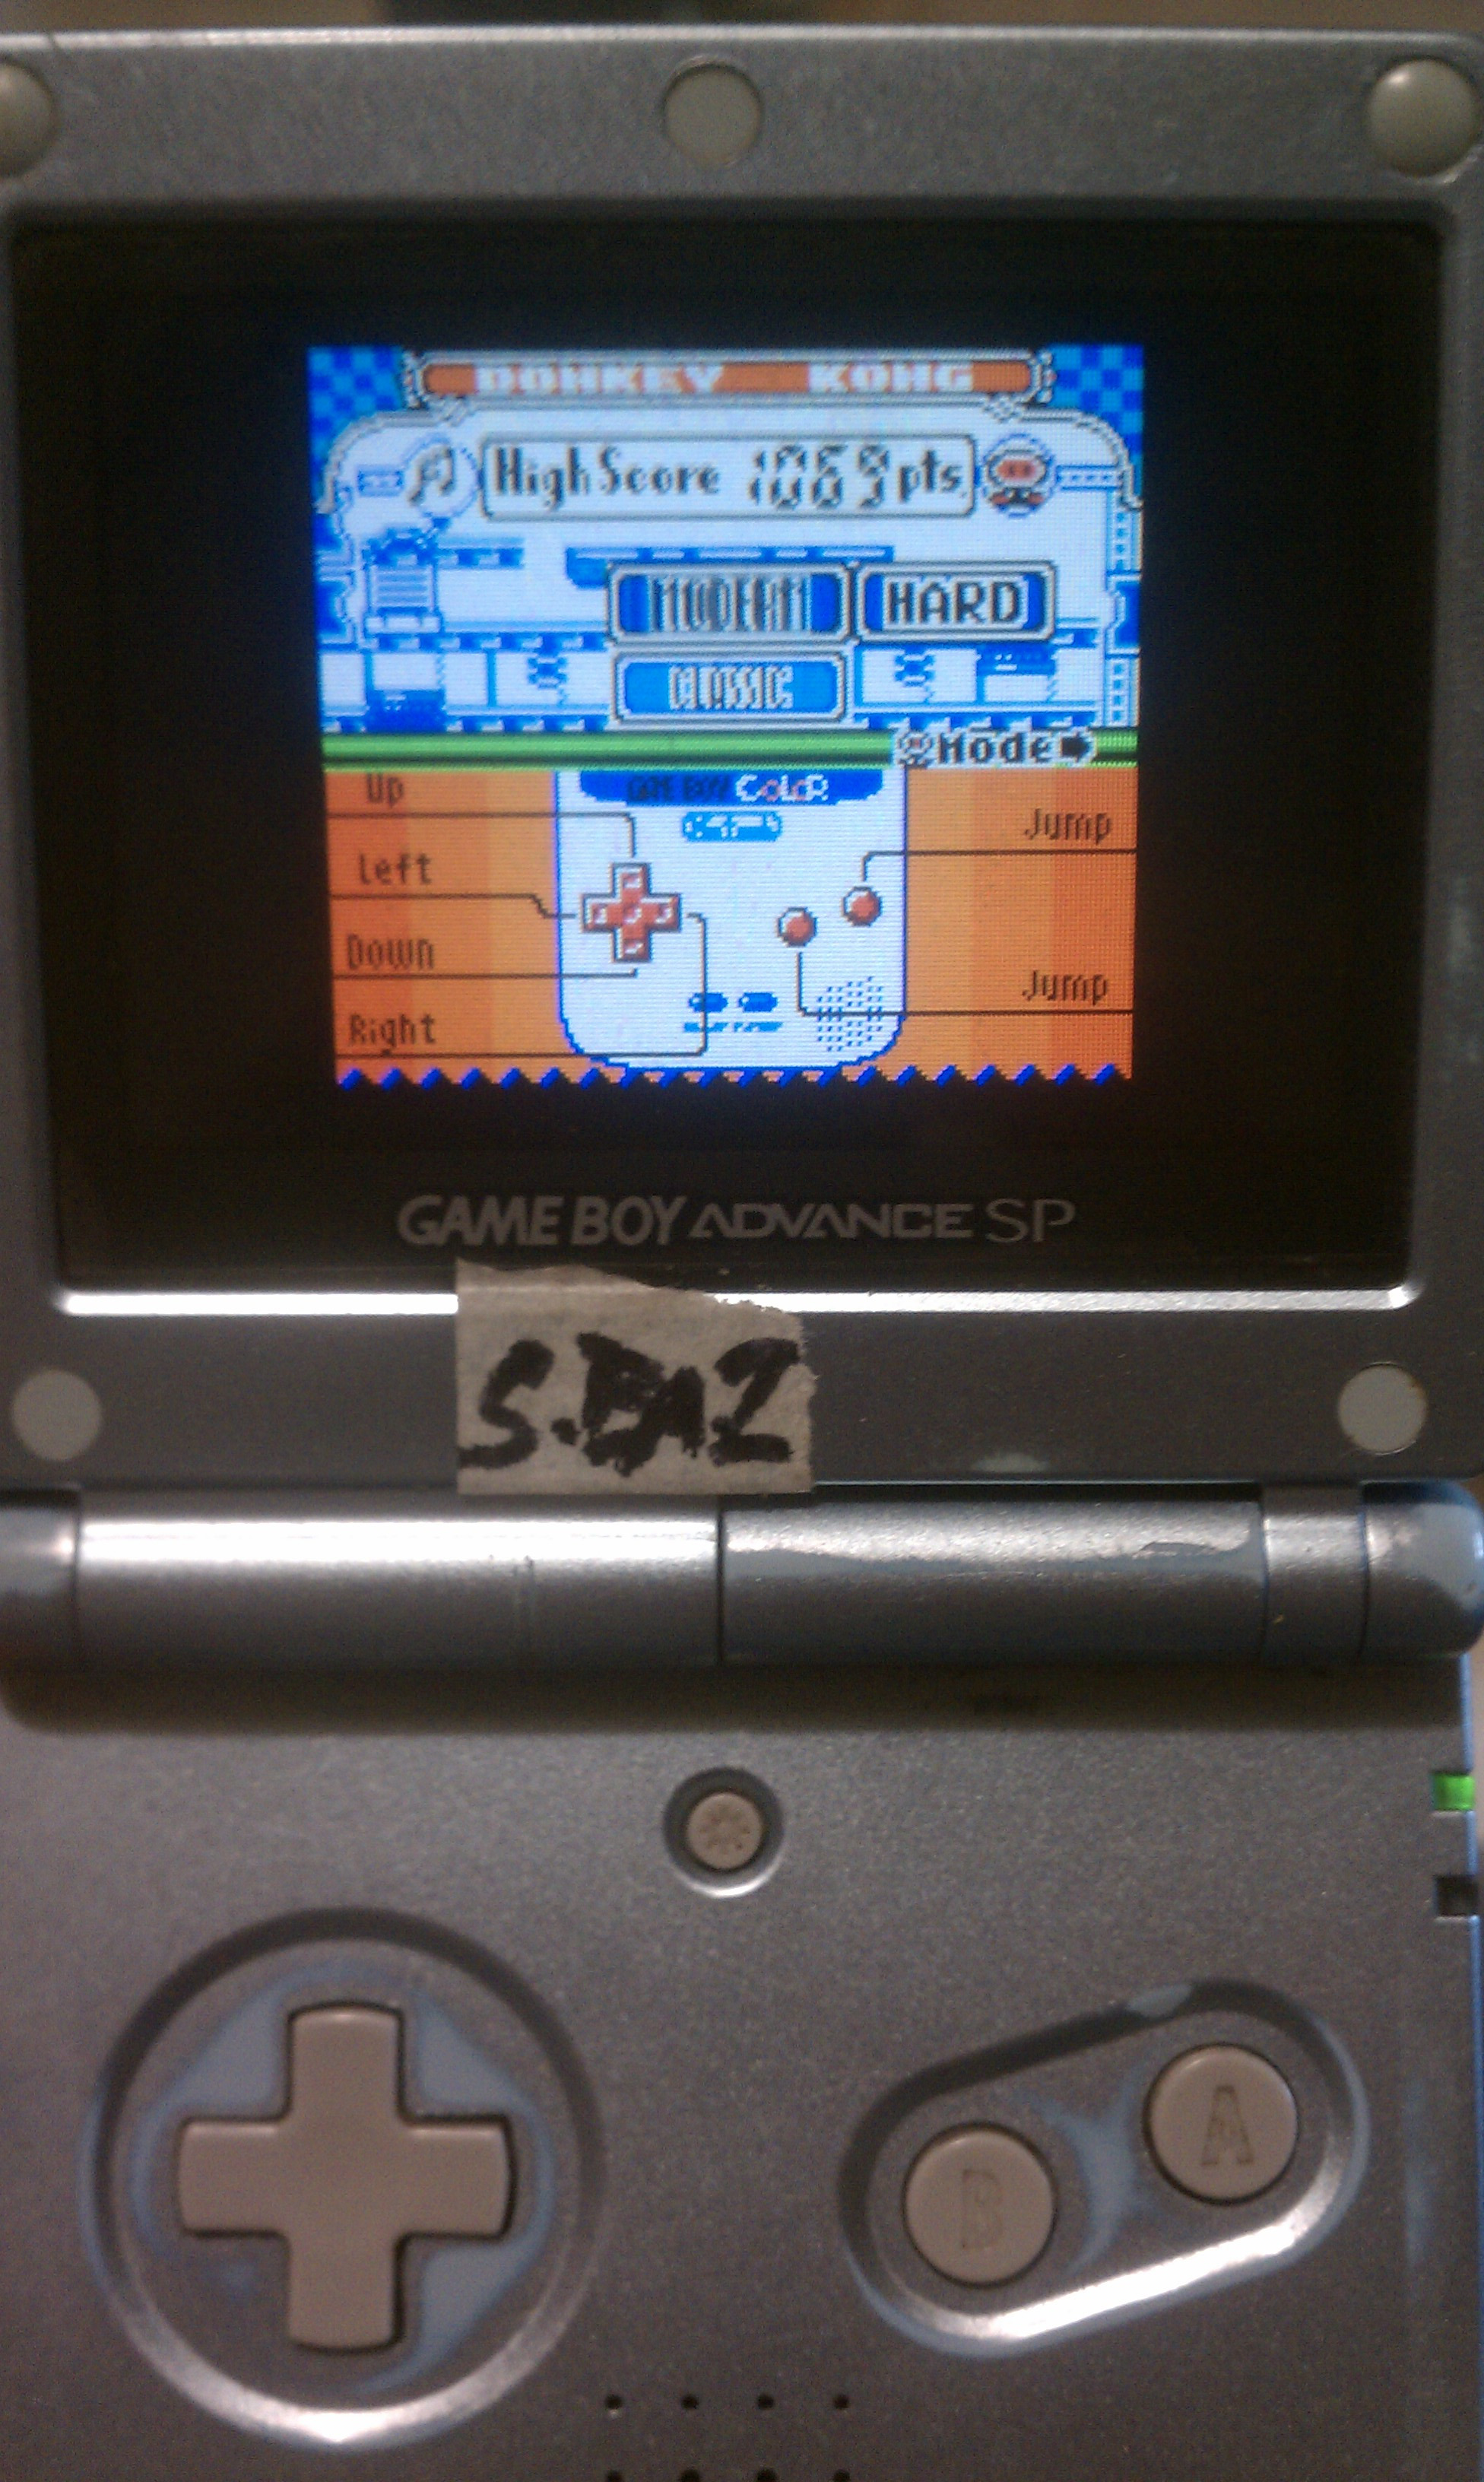 S.BAZ: Game & Watch Gallery 2: Donkey Kong: Modern: Hard (Game Boy Color) 1,069 points on 2020-08-30 19:13:11